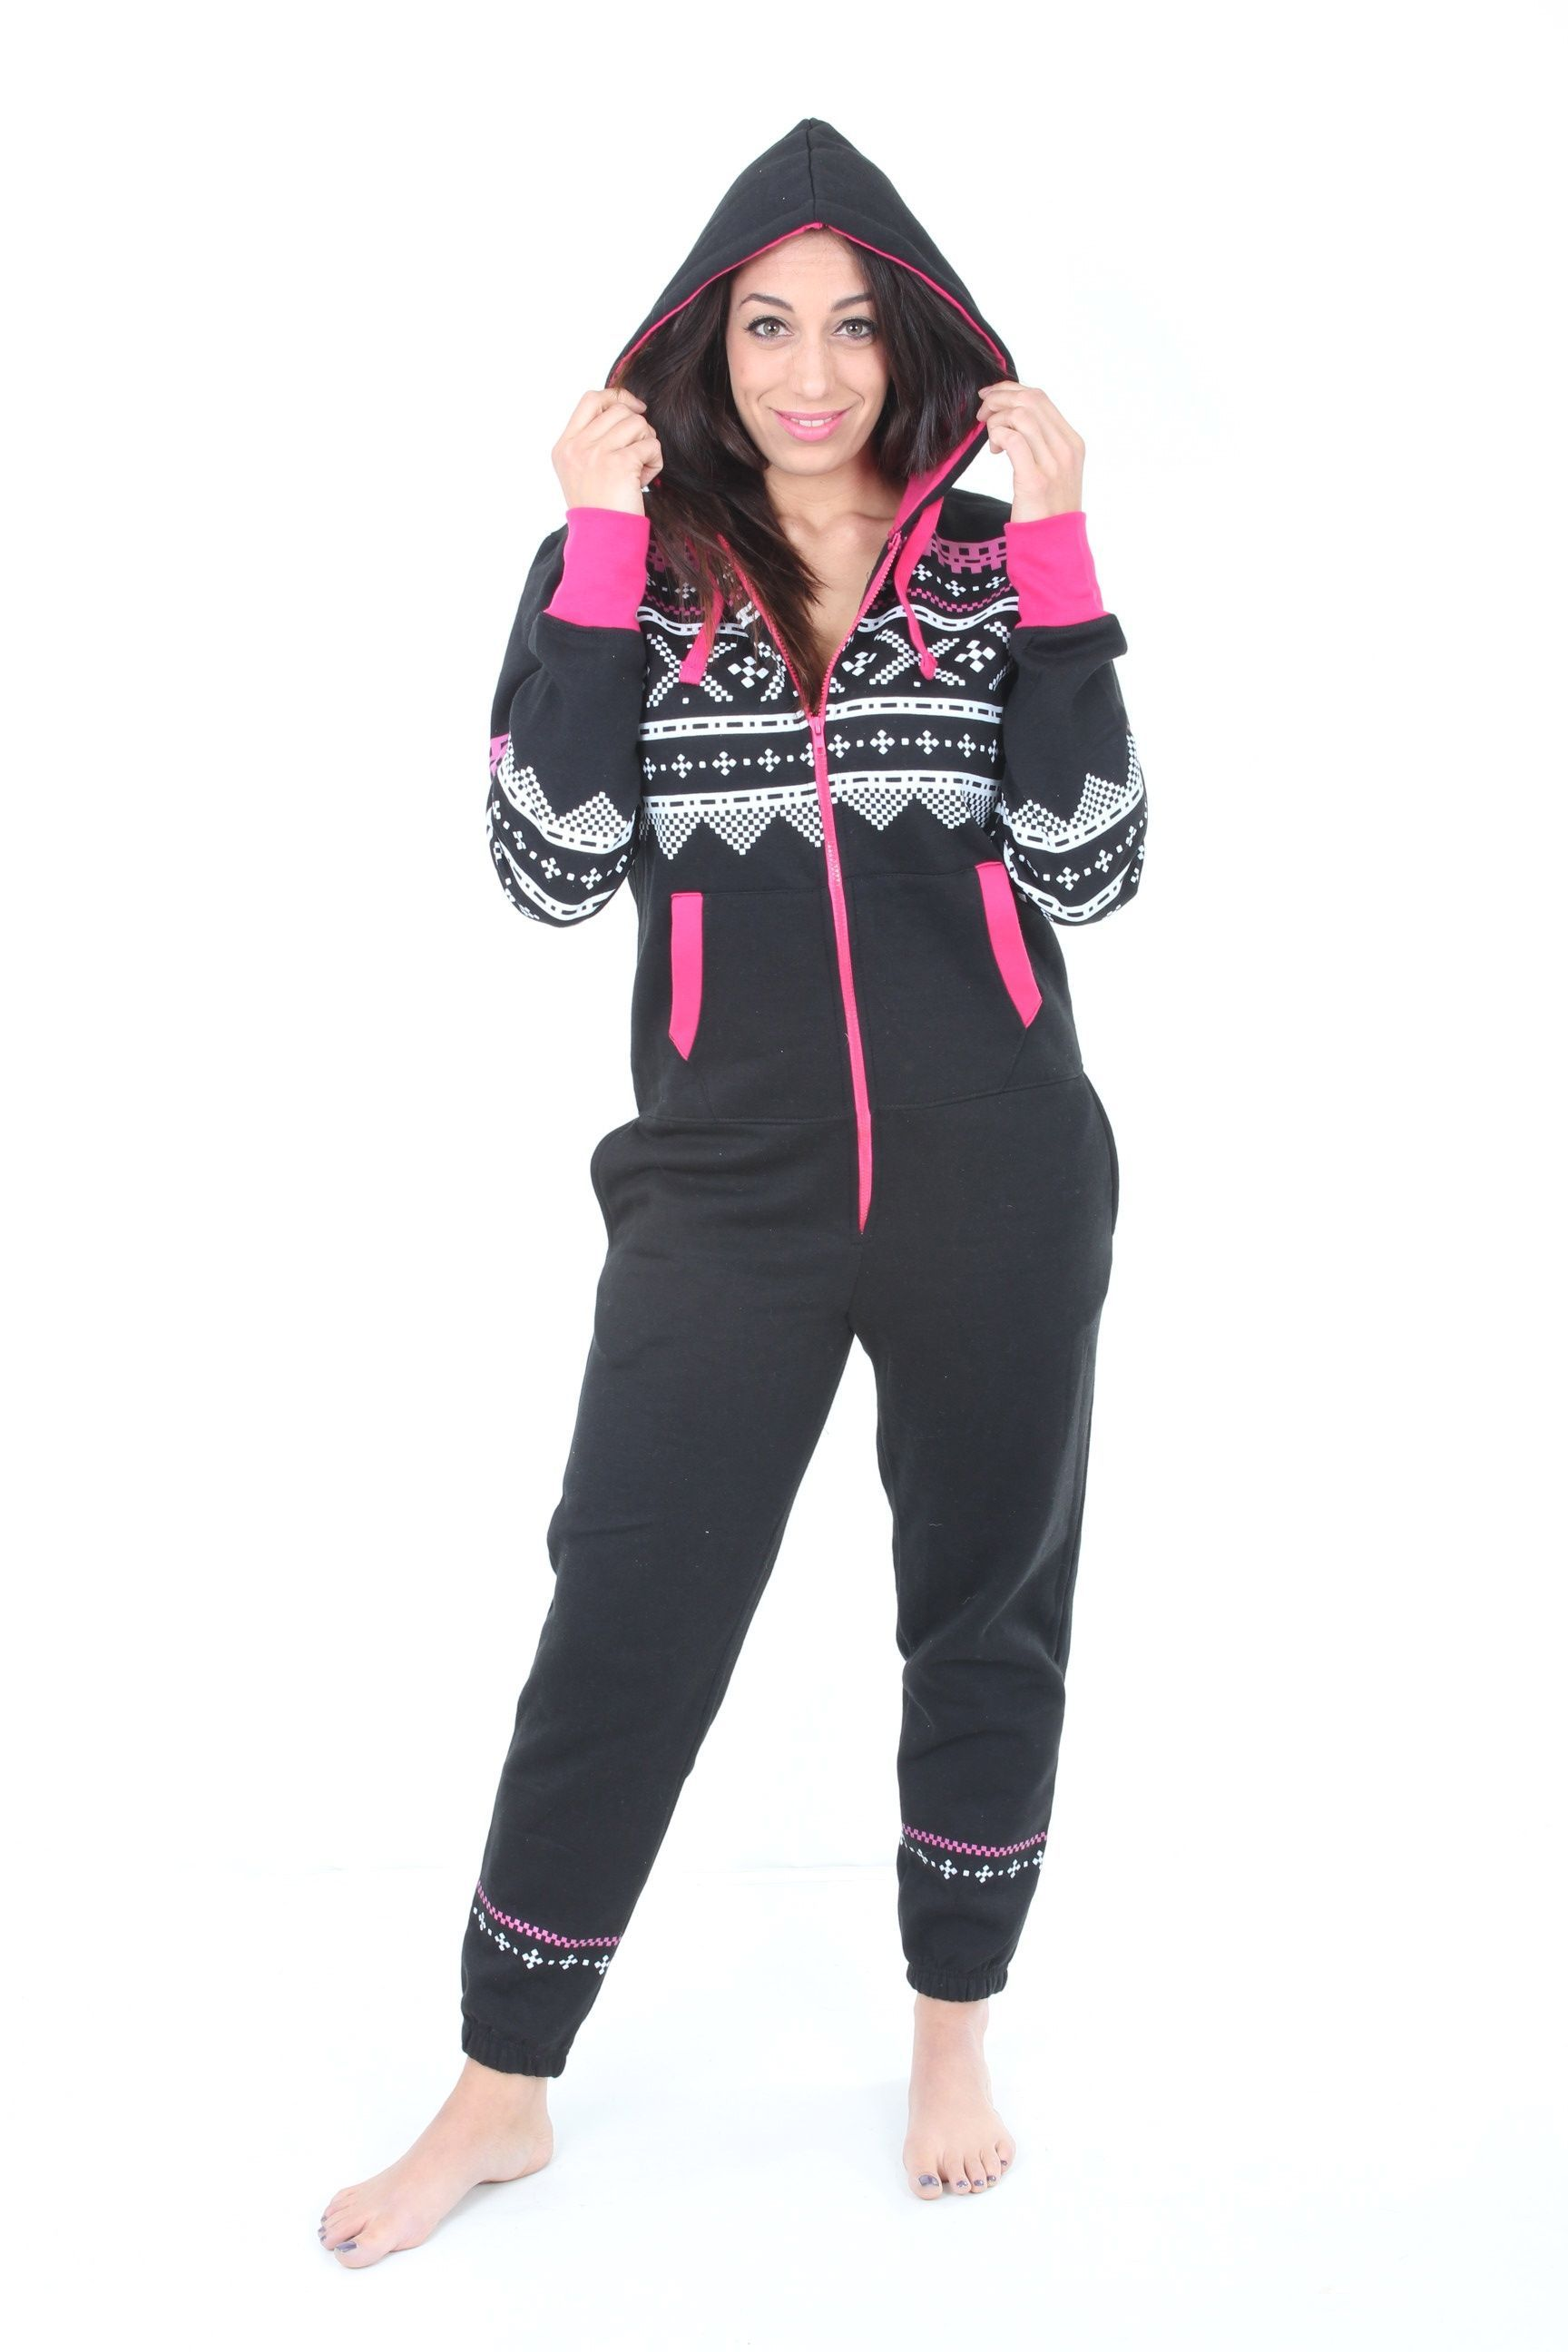 988eb3de77 UNISEX WOMENS MENS BLACK PINK AZTEC PRINT ADULT ONESIE ALL IN ONE PIECE SUIT